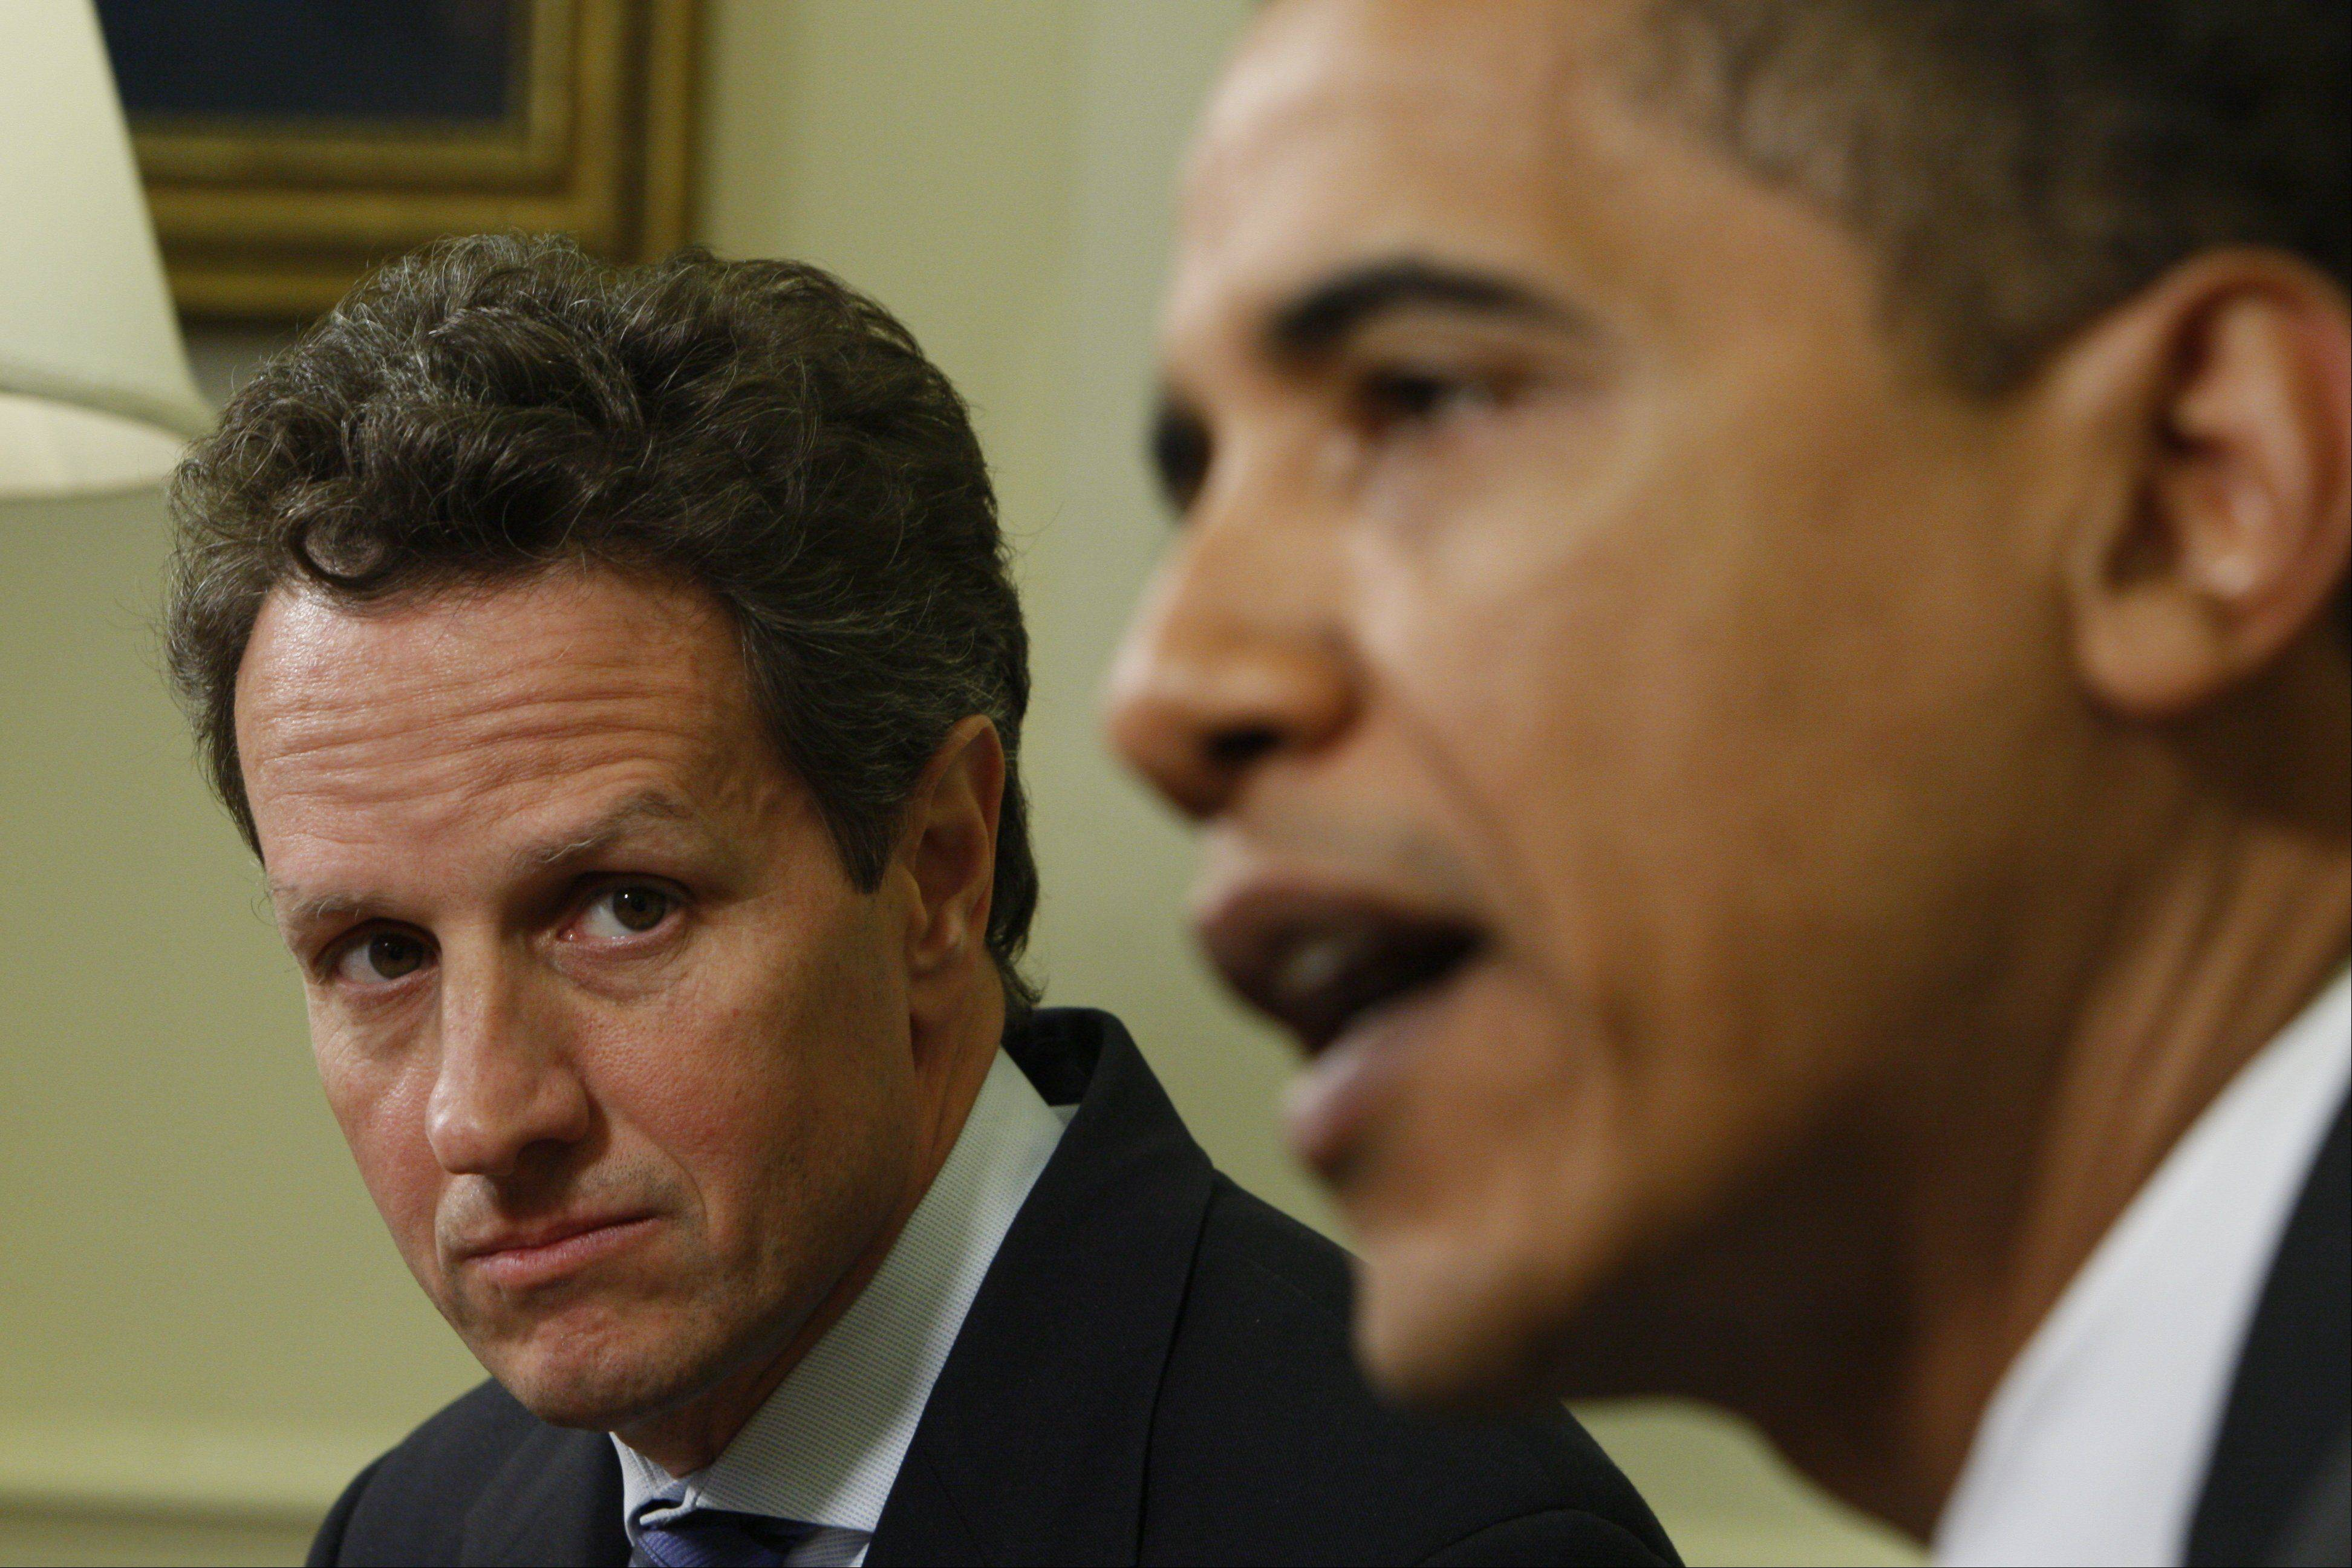 Treasury Secretary Tim Geithner, seen here, and White House legislative chief Rob Nabors will meet Thursday with House Speaker John Boehner, Senate Republican leader Mitch McConnell, Senate Majority Leader Harry Reid and House Democratic leader Nancy Pelosi of Californiato discuss negotiations to avoid the fiscal cliff.